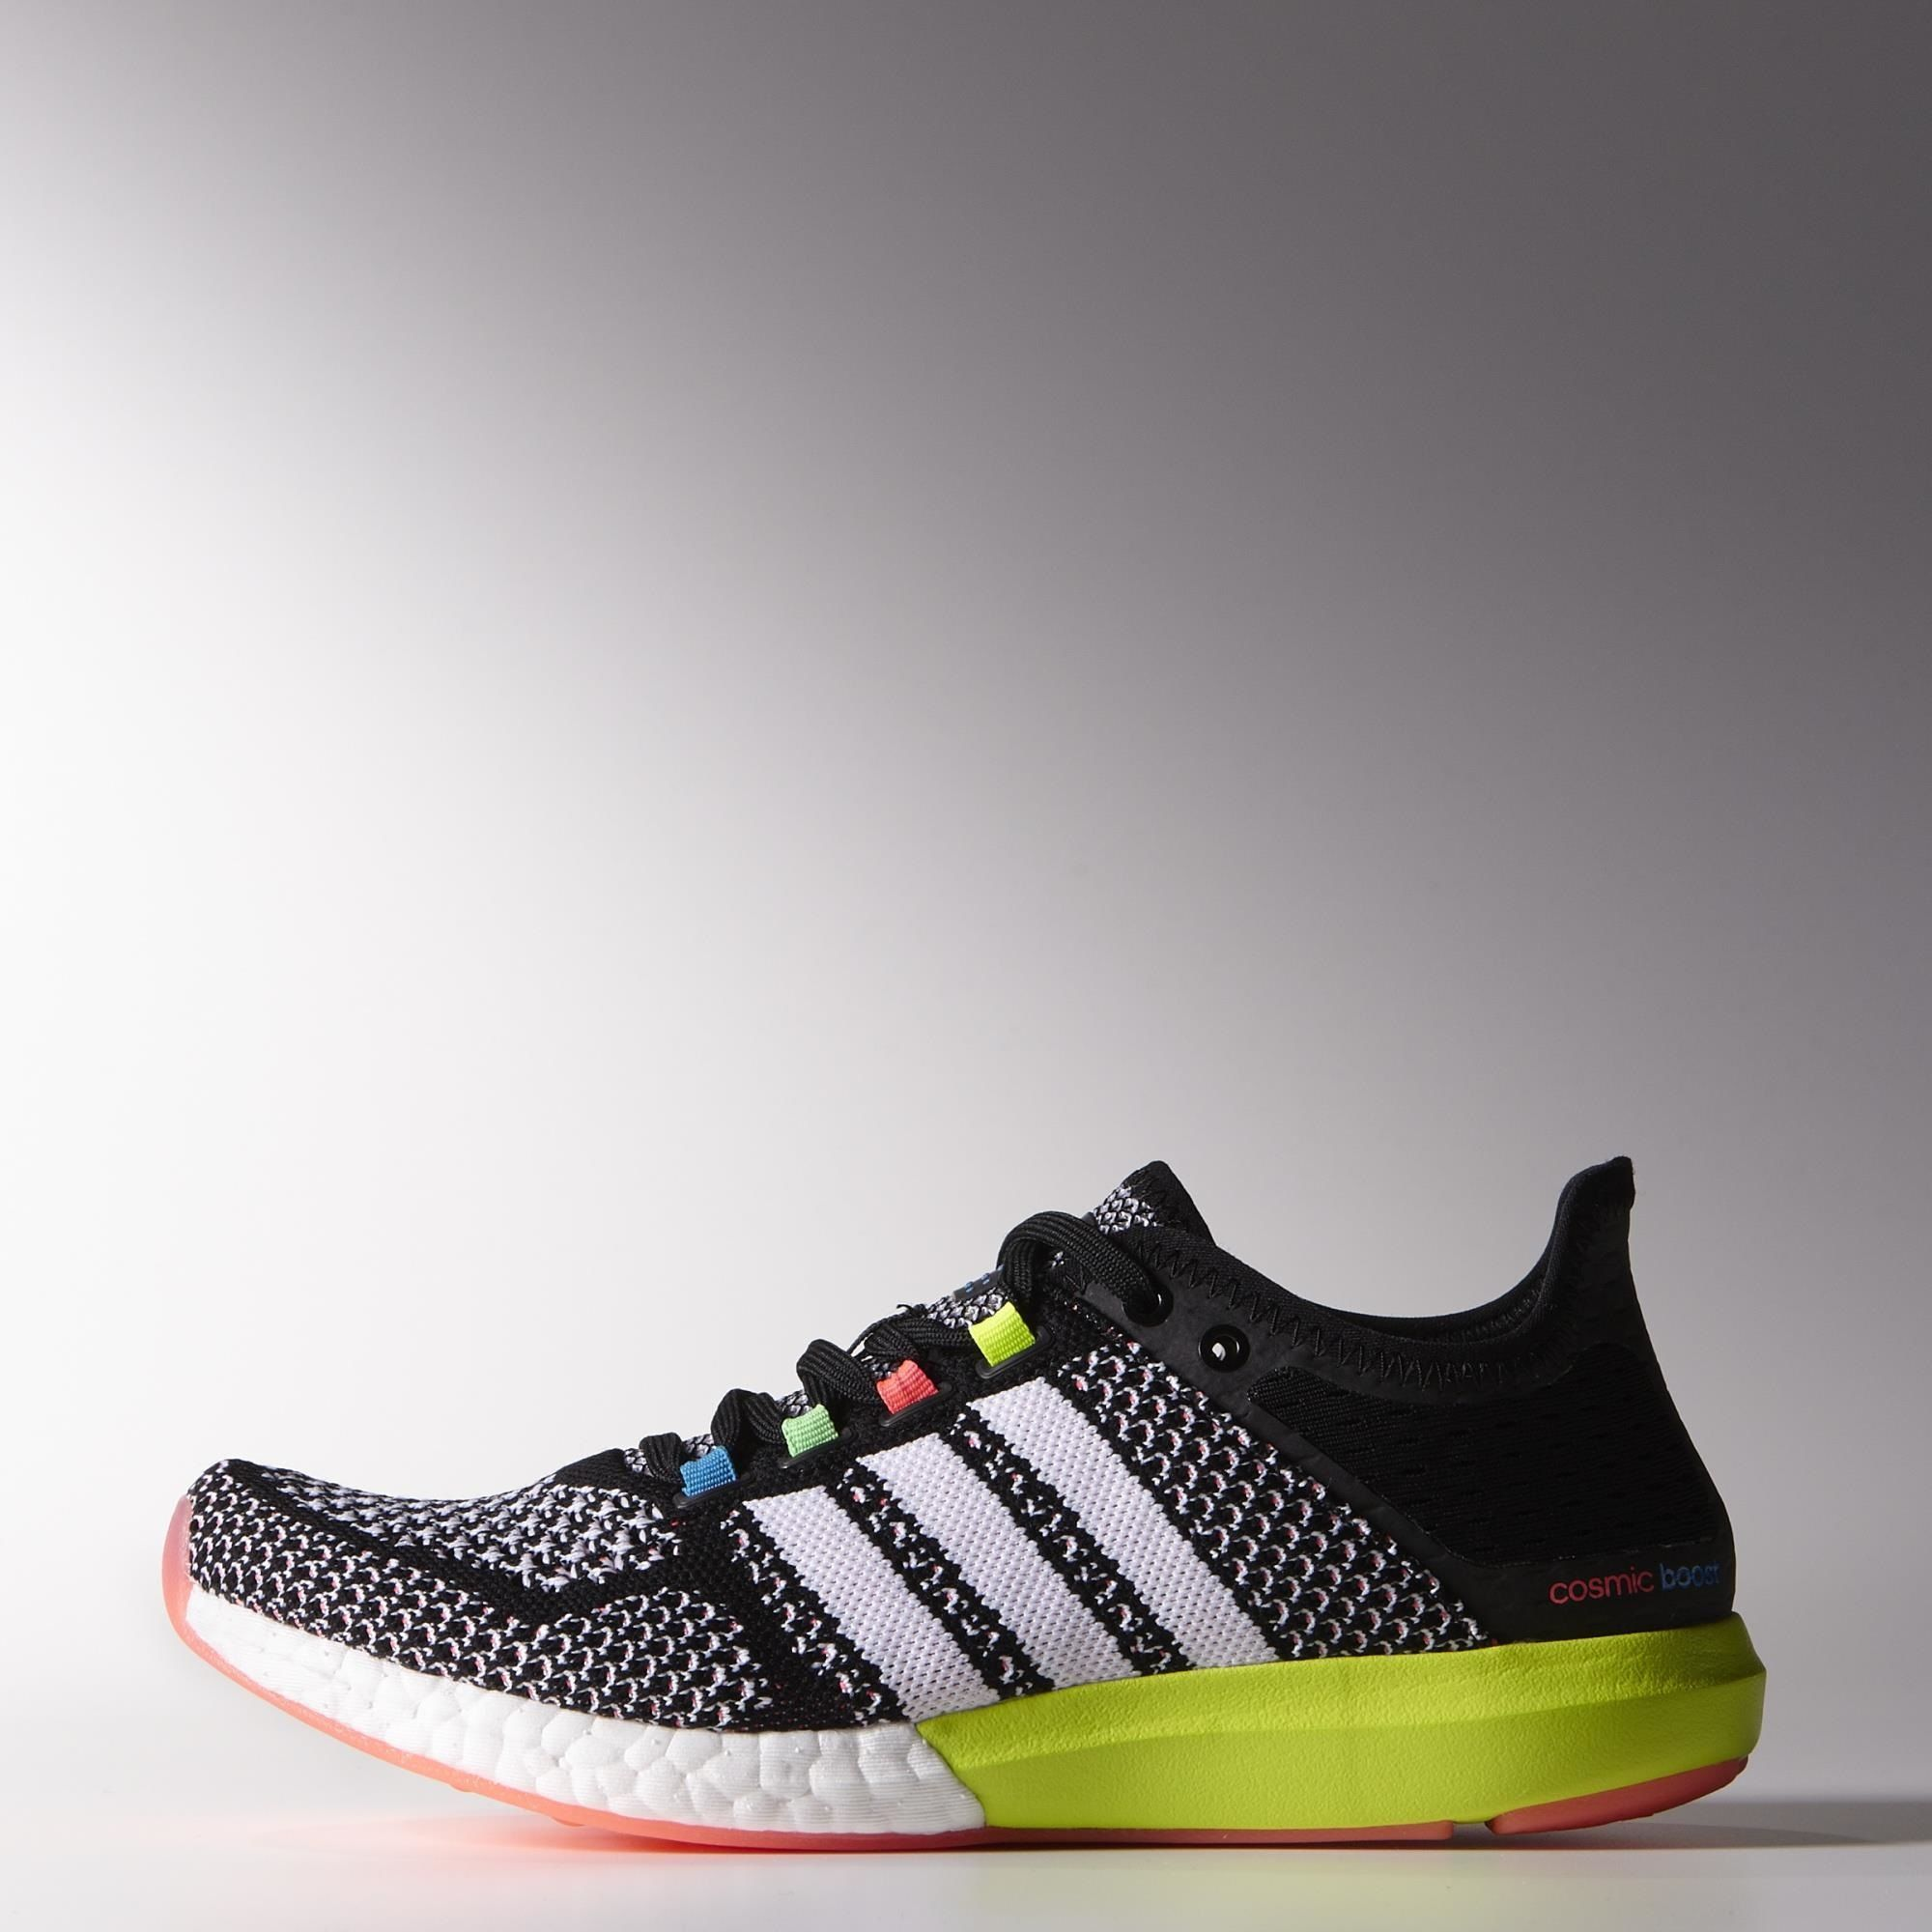 adidas Climachill Cosmic Boost Shoes - Multicolor | adidas US